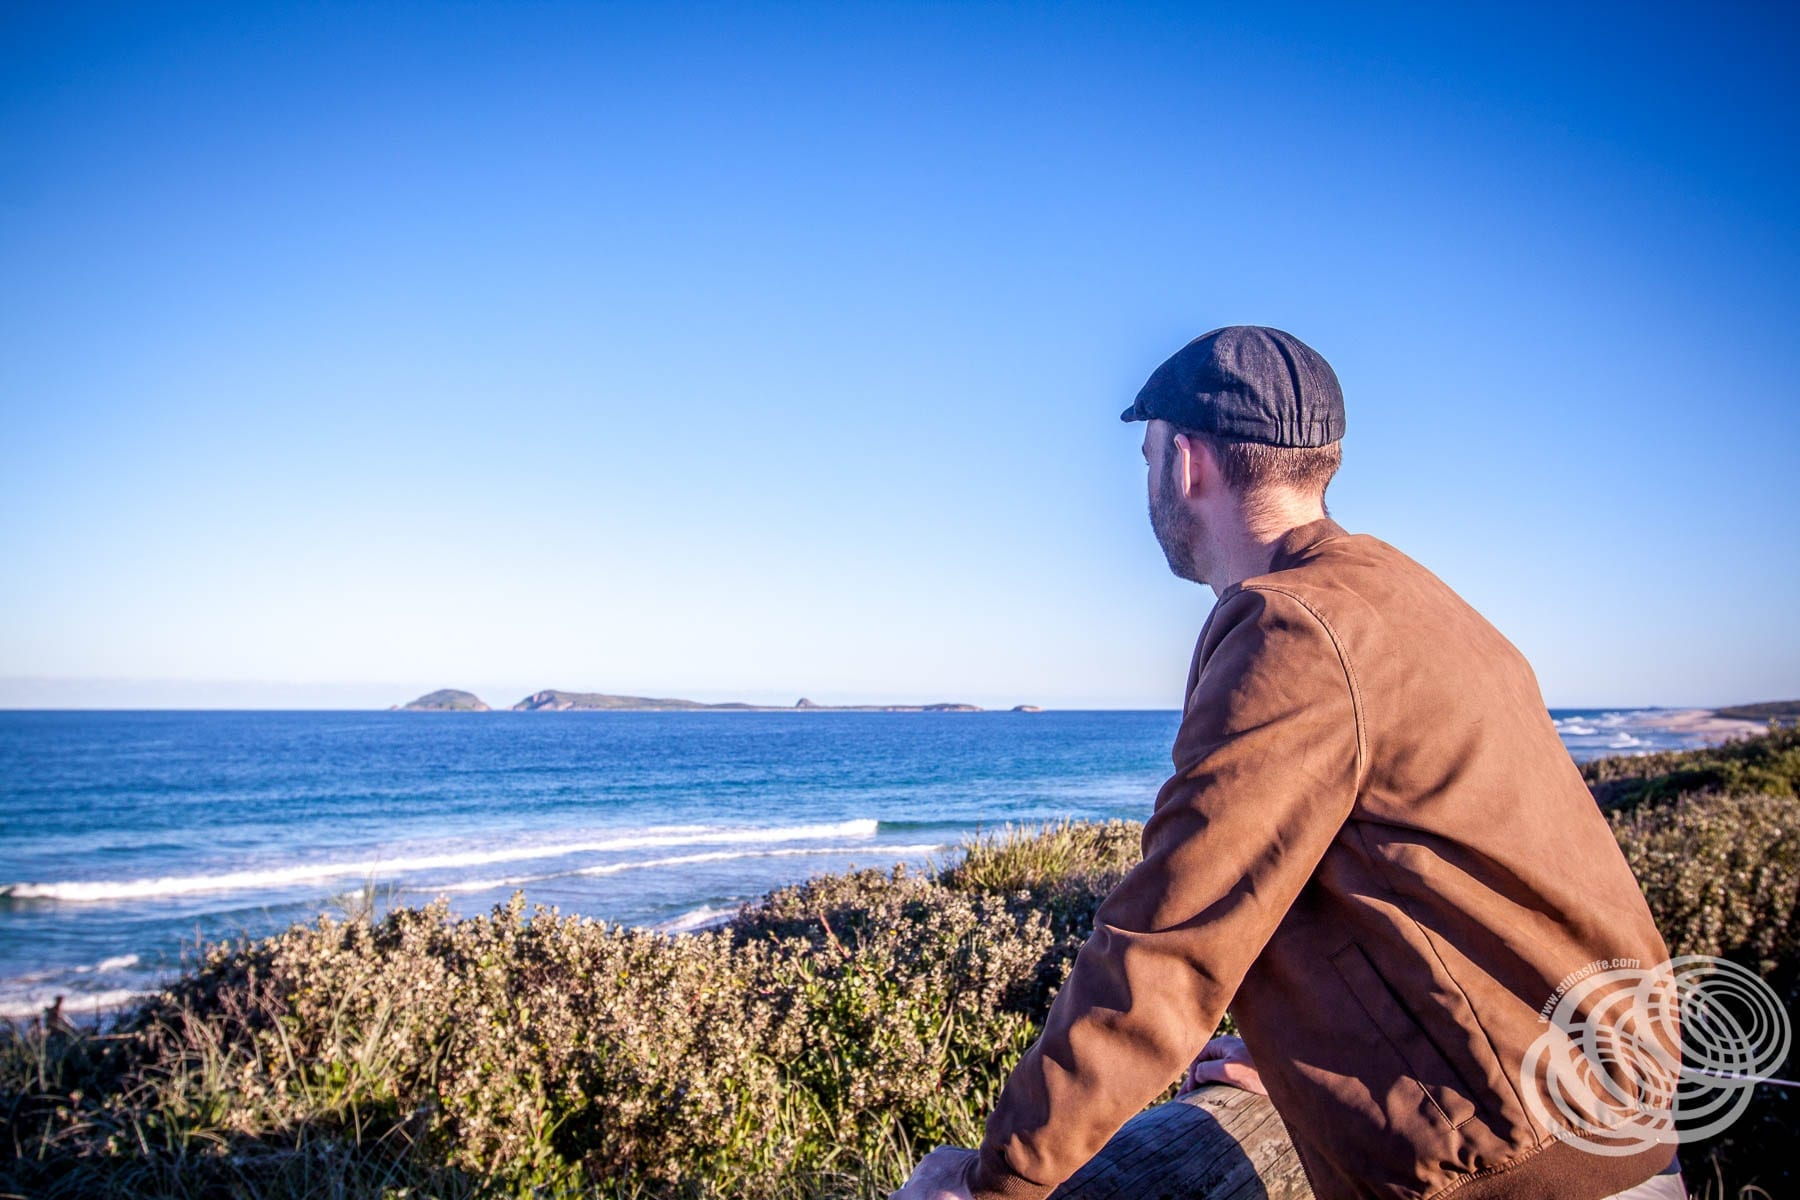 Matt Looking To Broughton Island from Myall National Park.